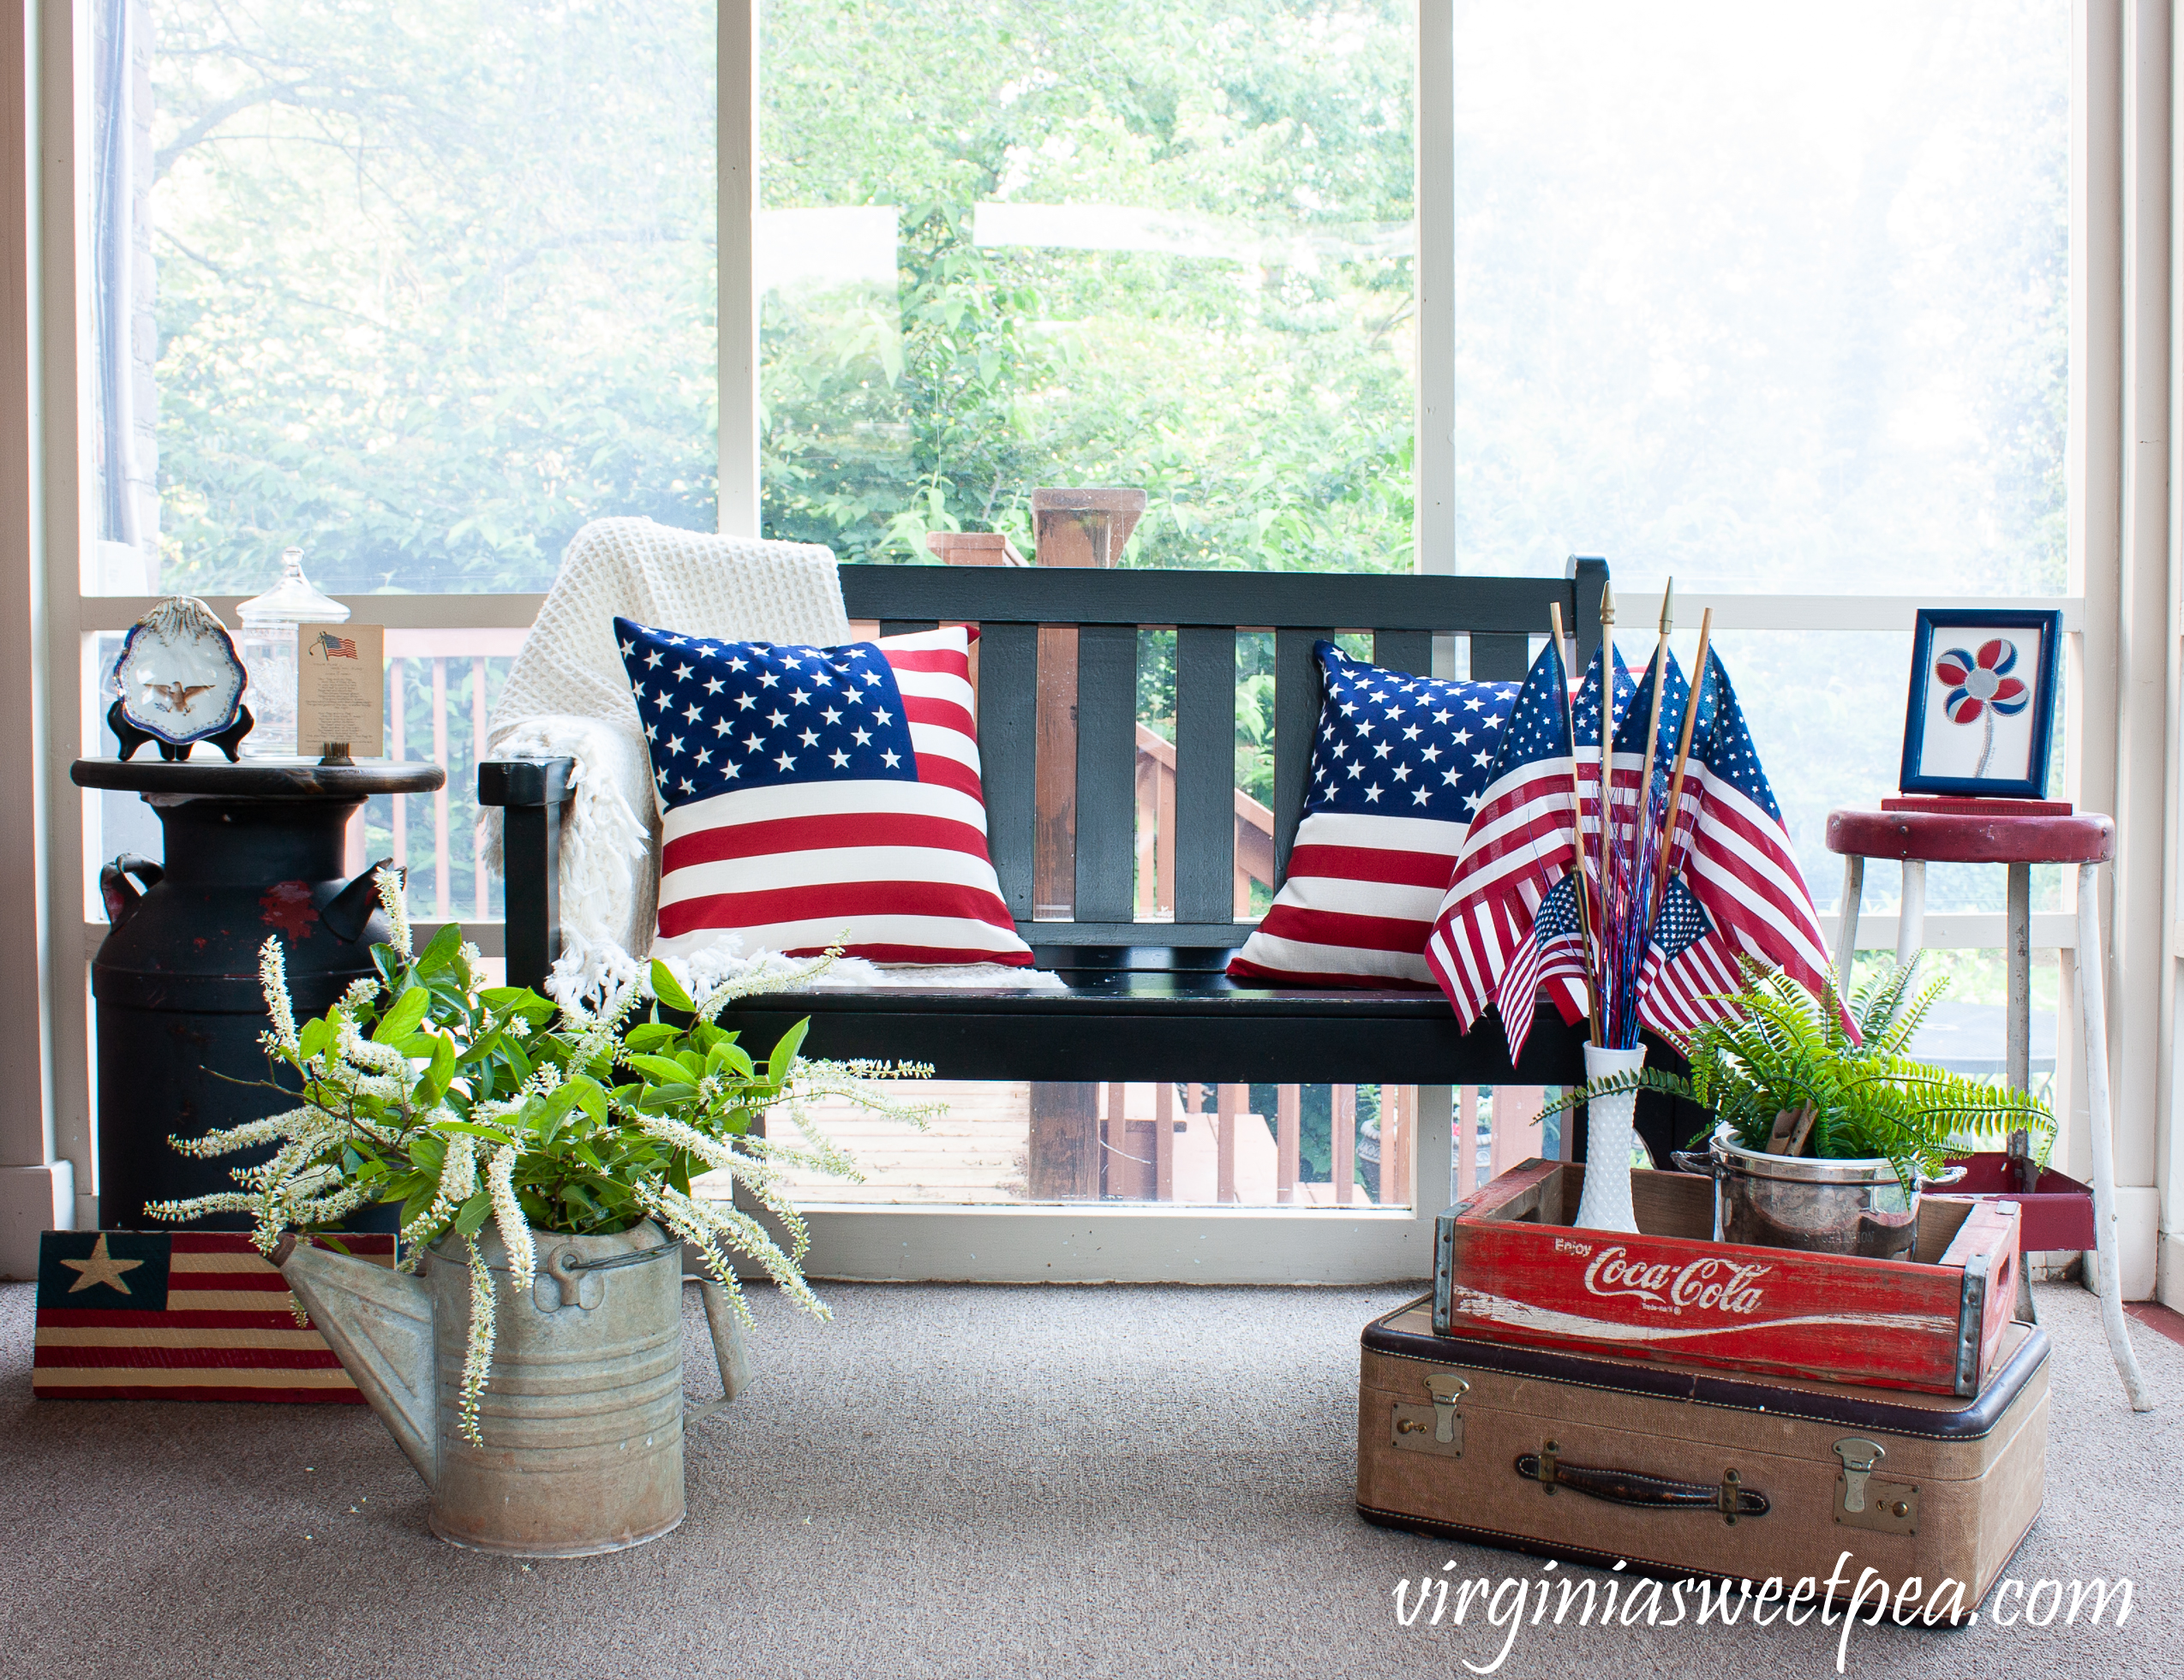 A porch is decorated patriotically with red, white, and blue and with vintage for July 4 and Memorial Day.